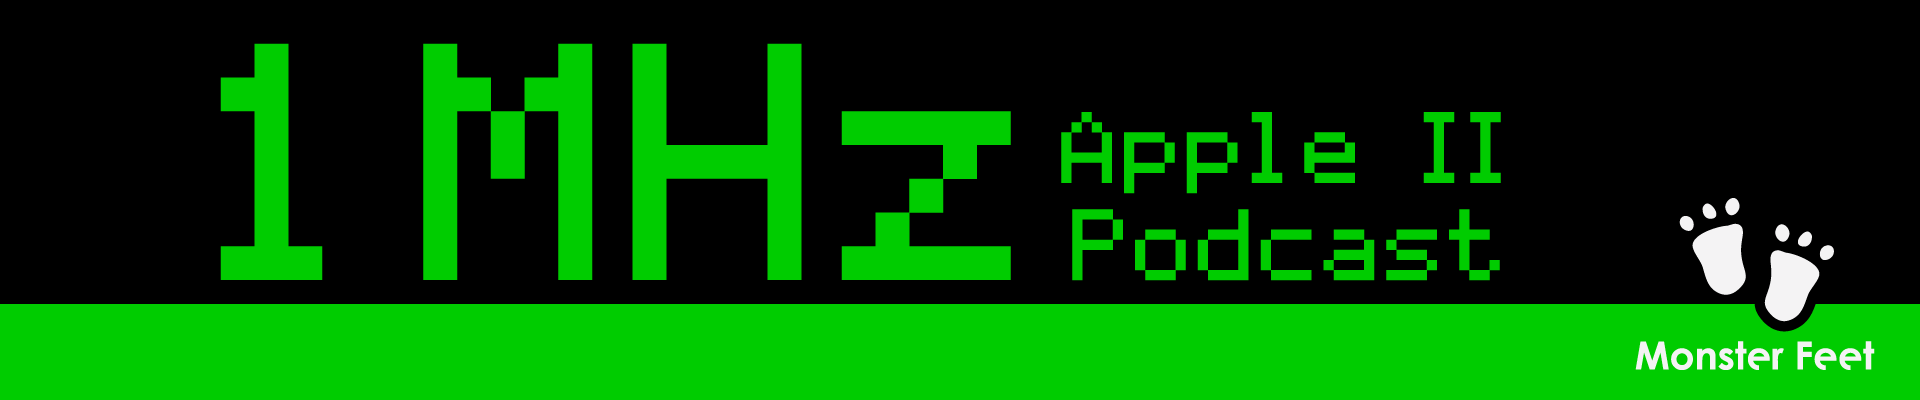 1 MHz: An Apple II podcast: 8-bit Apple II reviews and 2-bit Apple II news